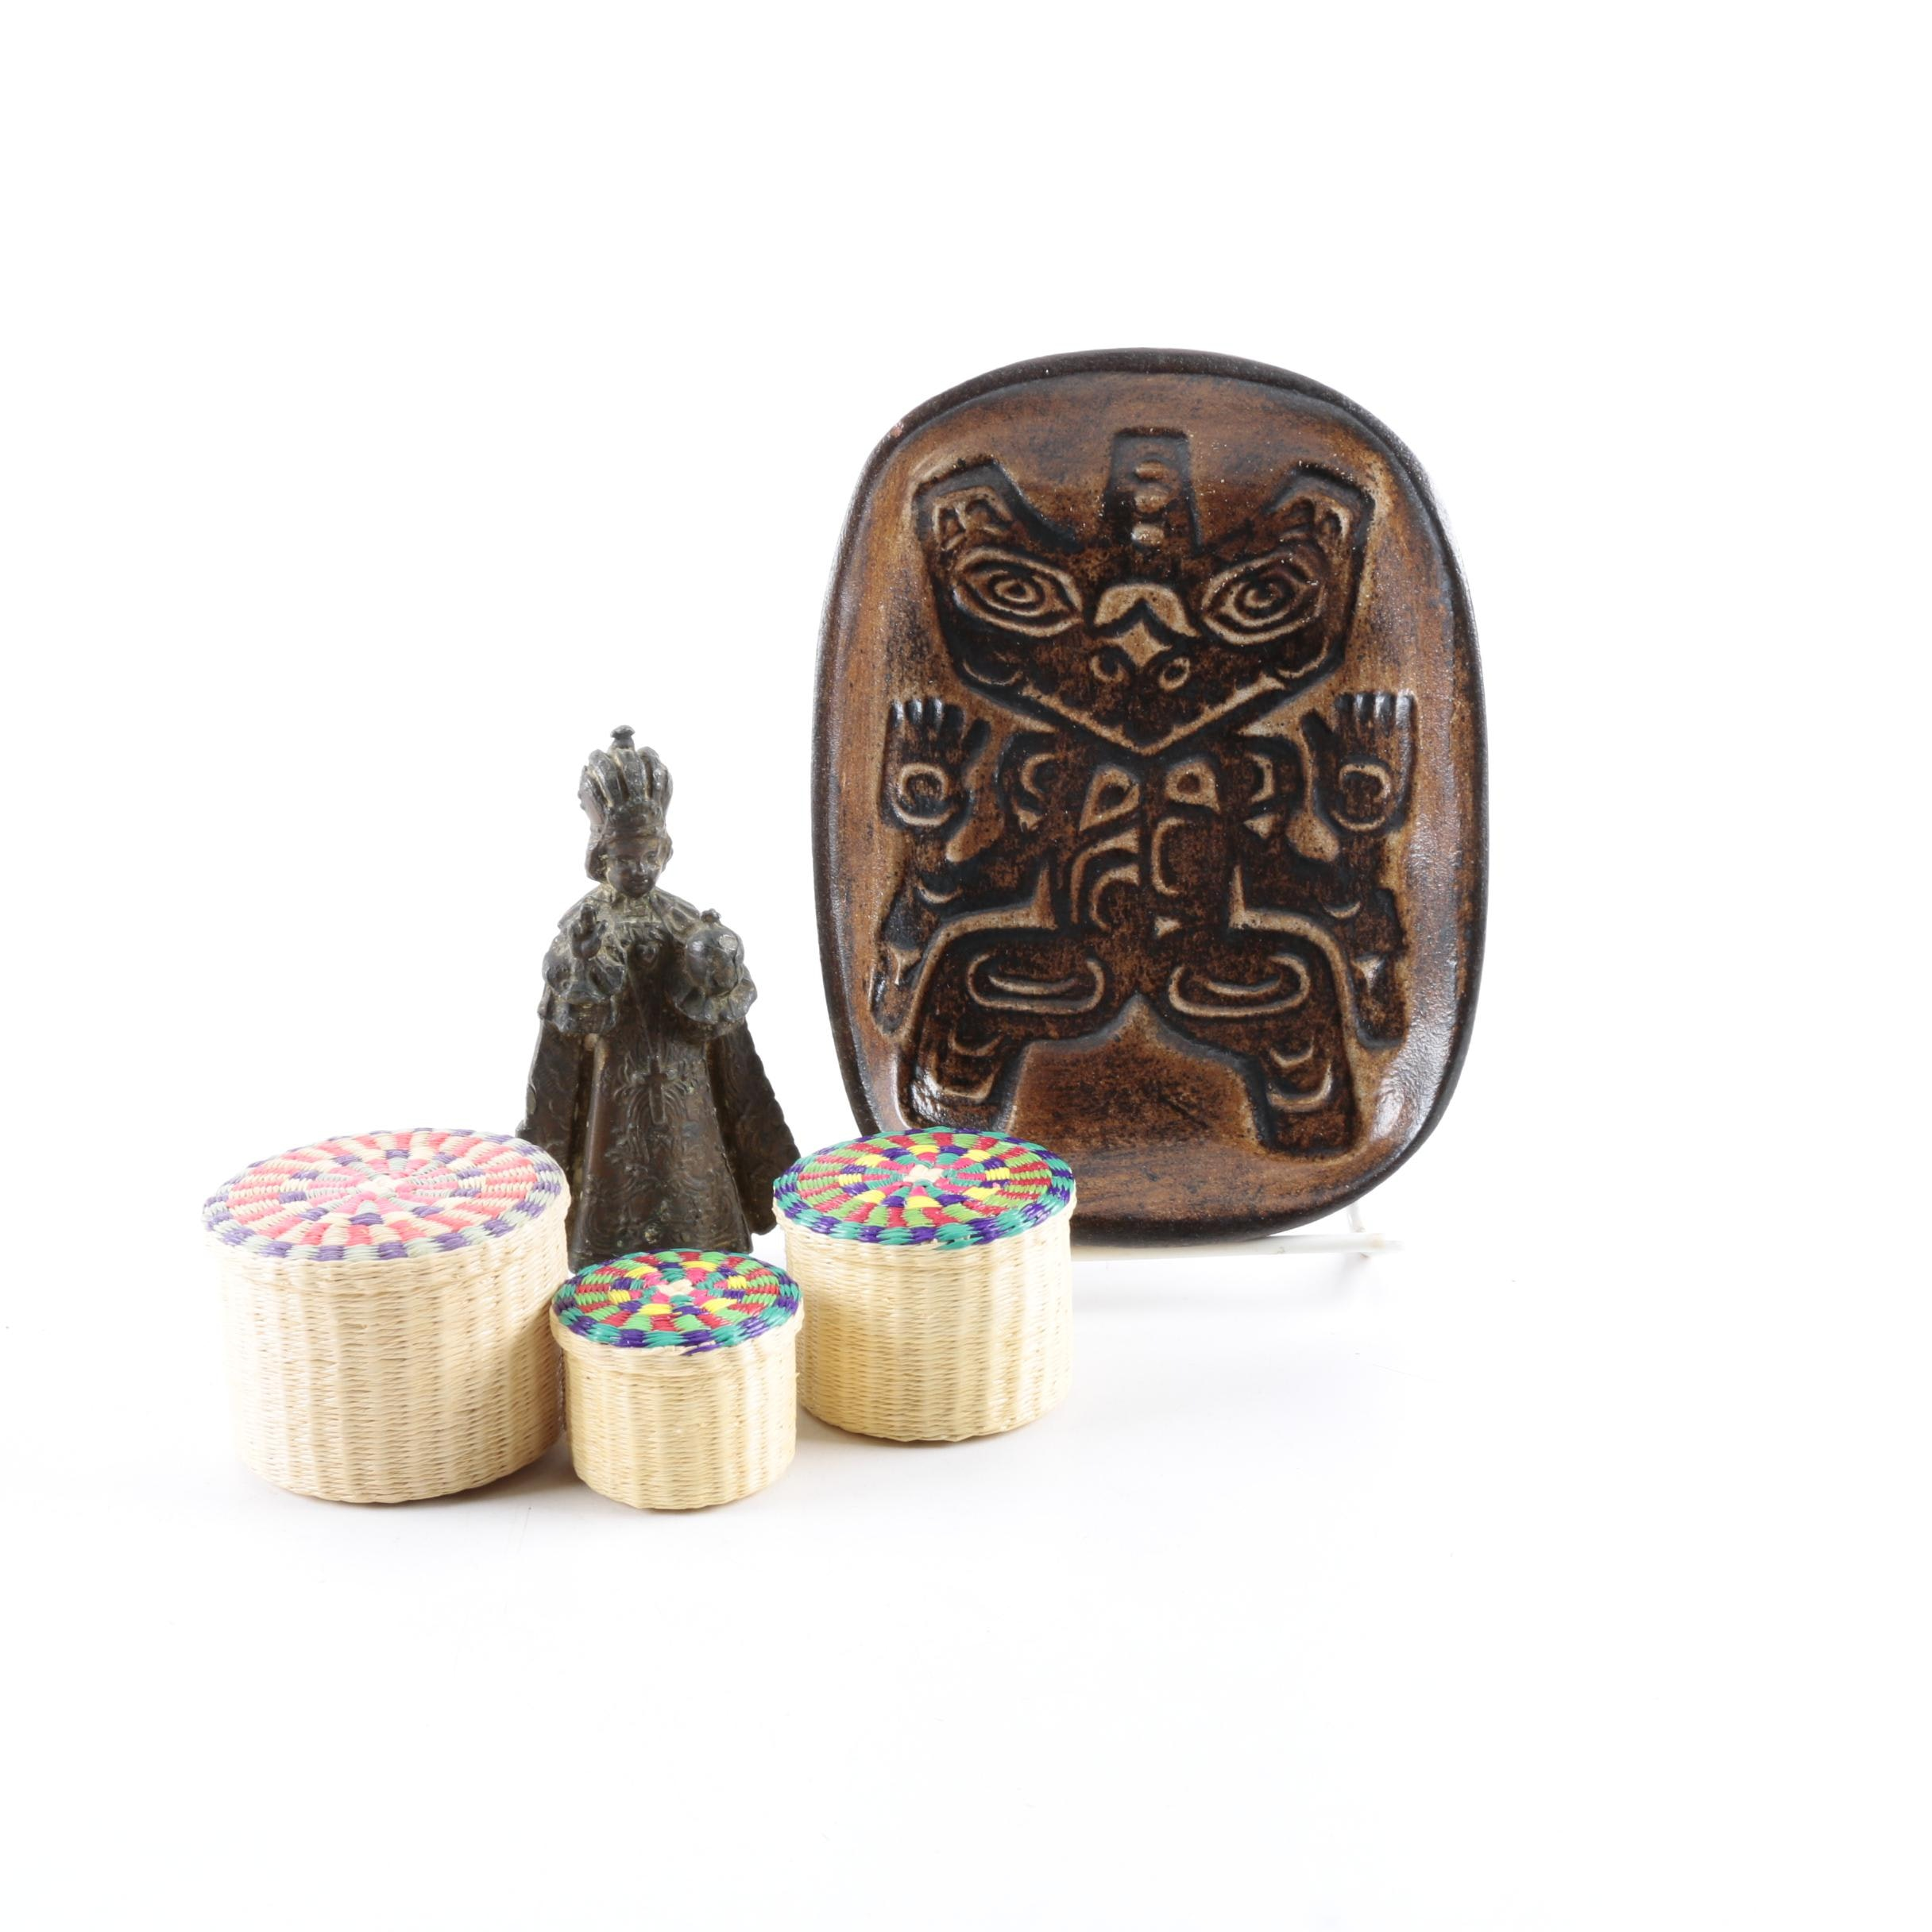 Infant Jesus Of Prague Figurine, Haida Bear Dish, And Small Woven Trinket Boxes